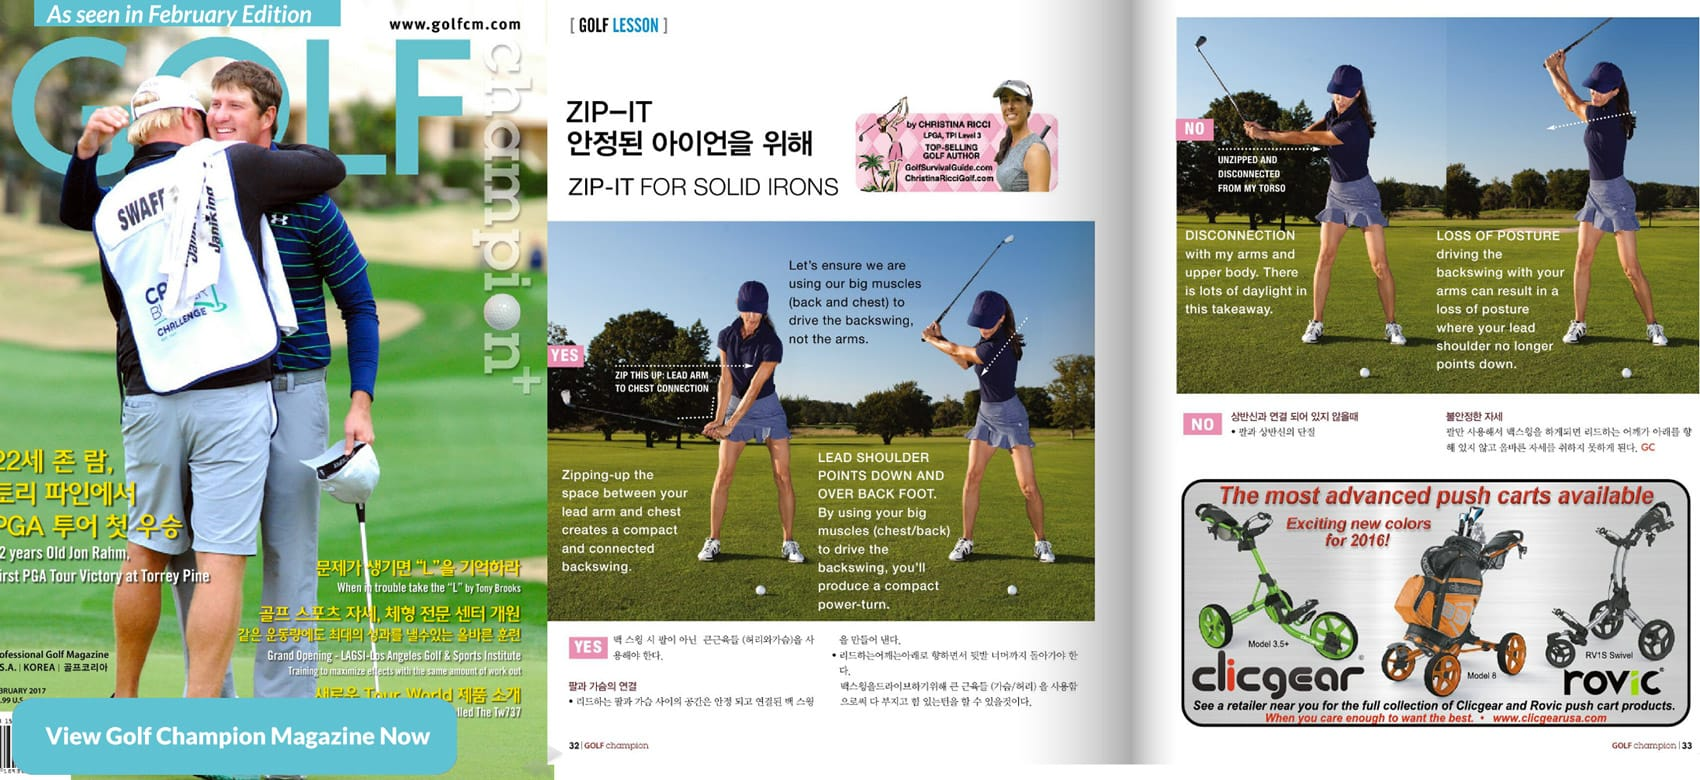 ChampionGolf-FebEdition-Irons-Zipit